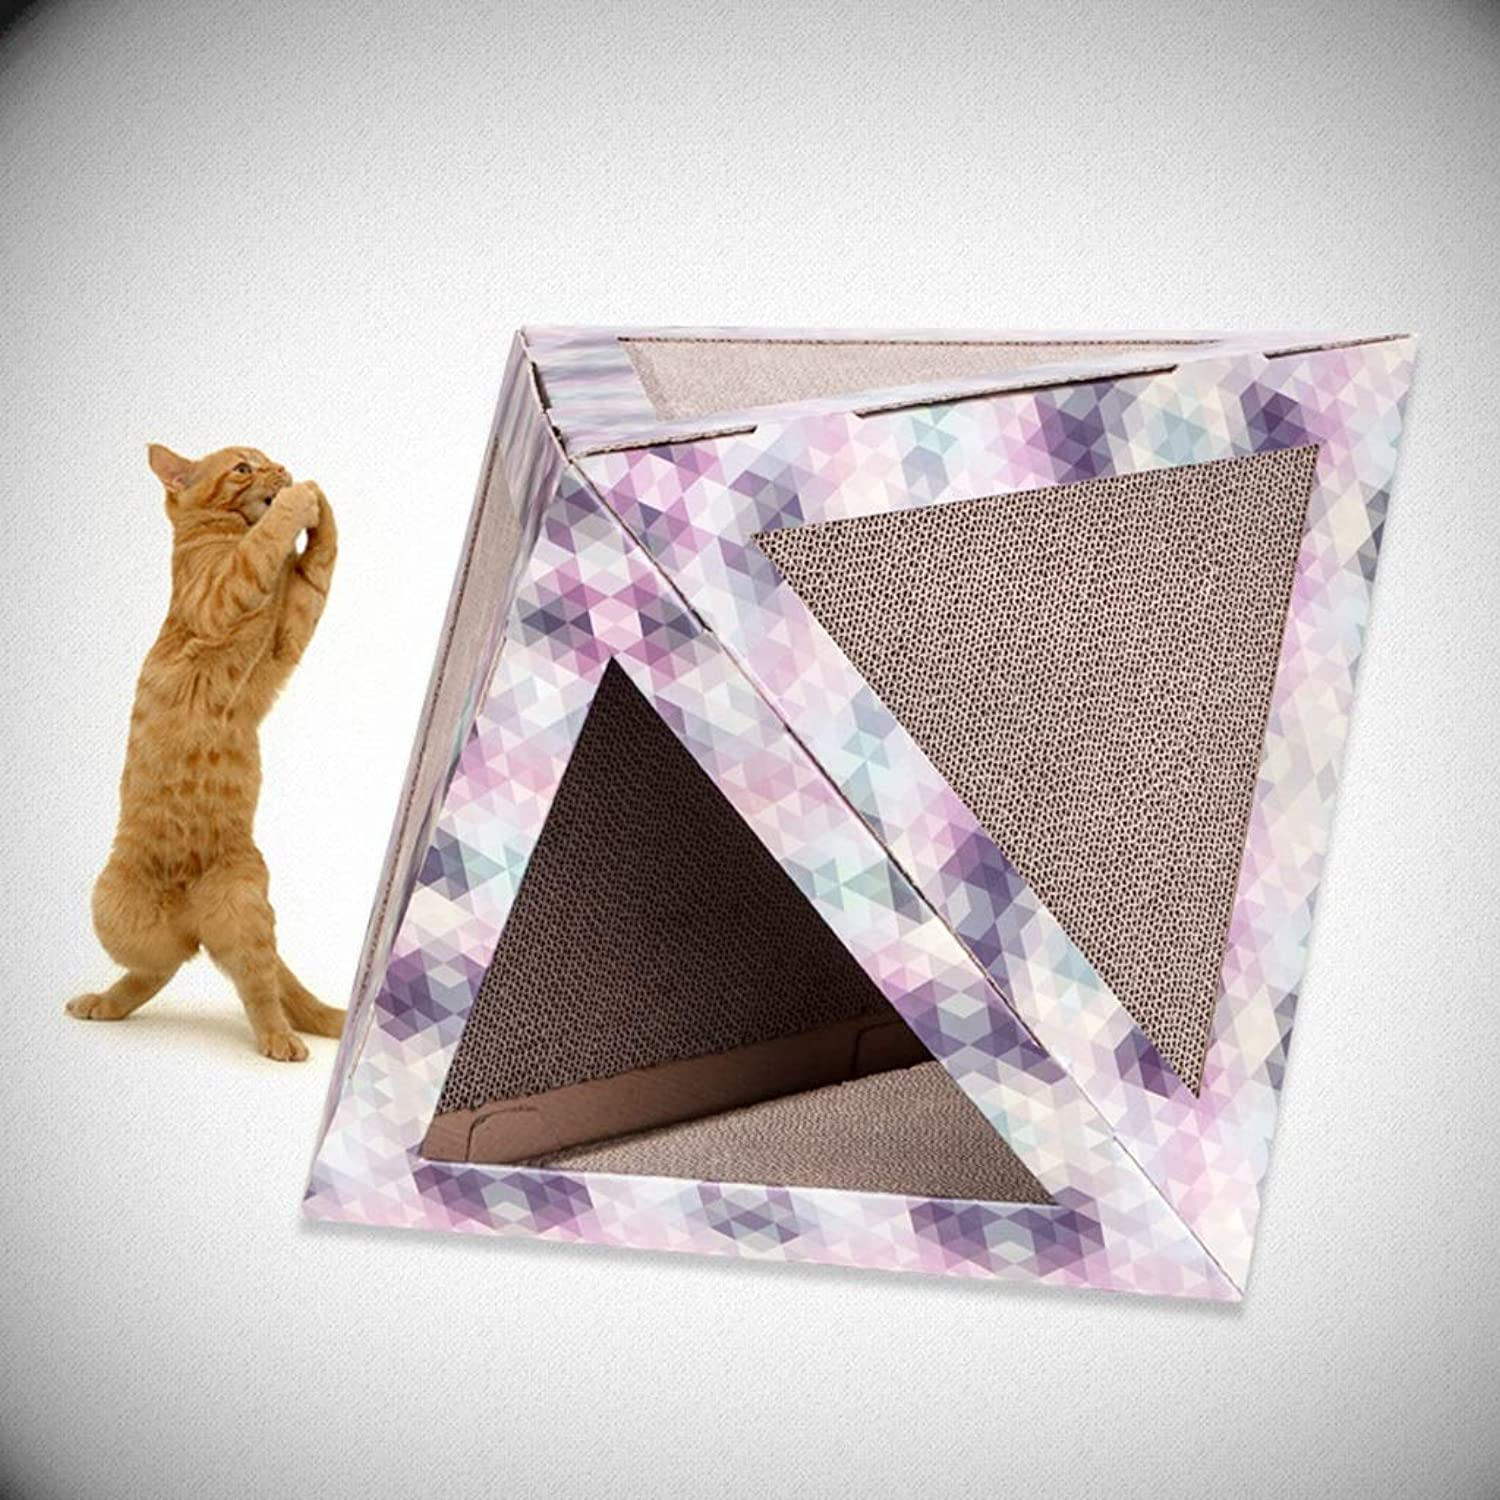 Four Seasons Available Cat Bed Cat Supplies Cat Scratch Board Furniture, Corrugated Material SMBYLL